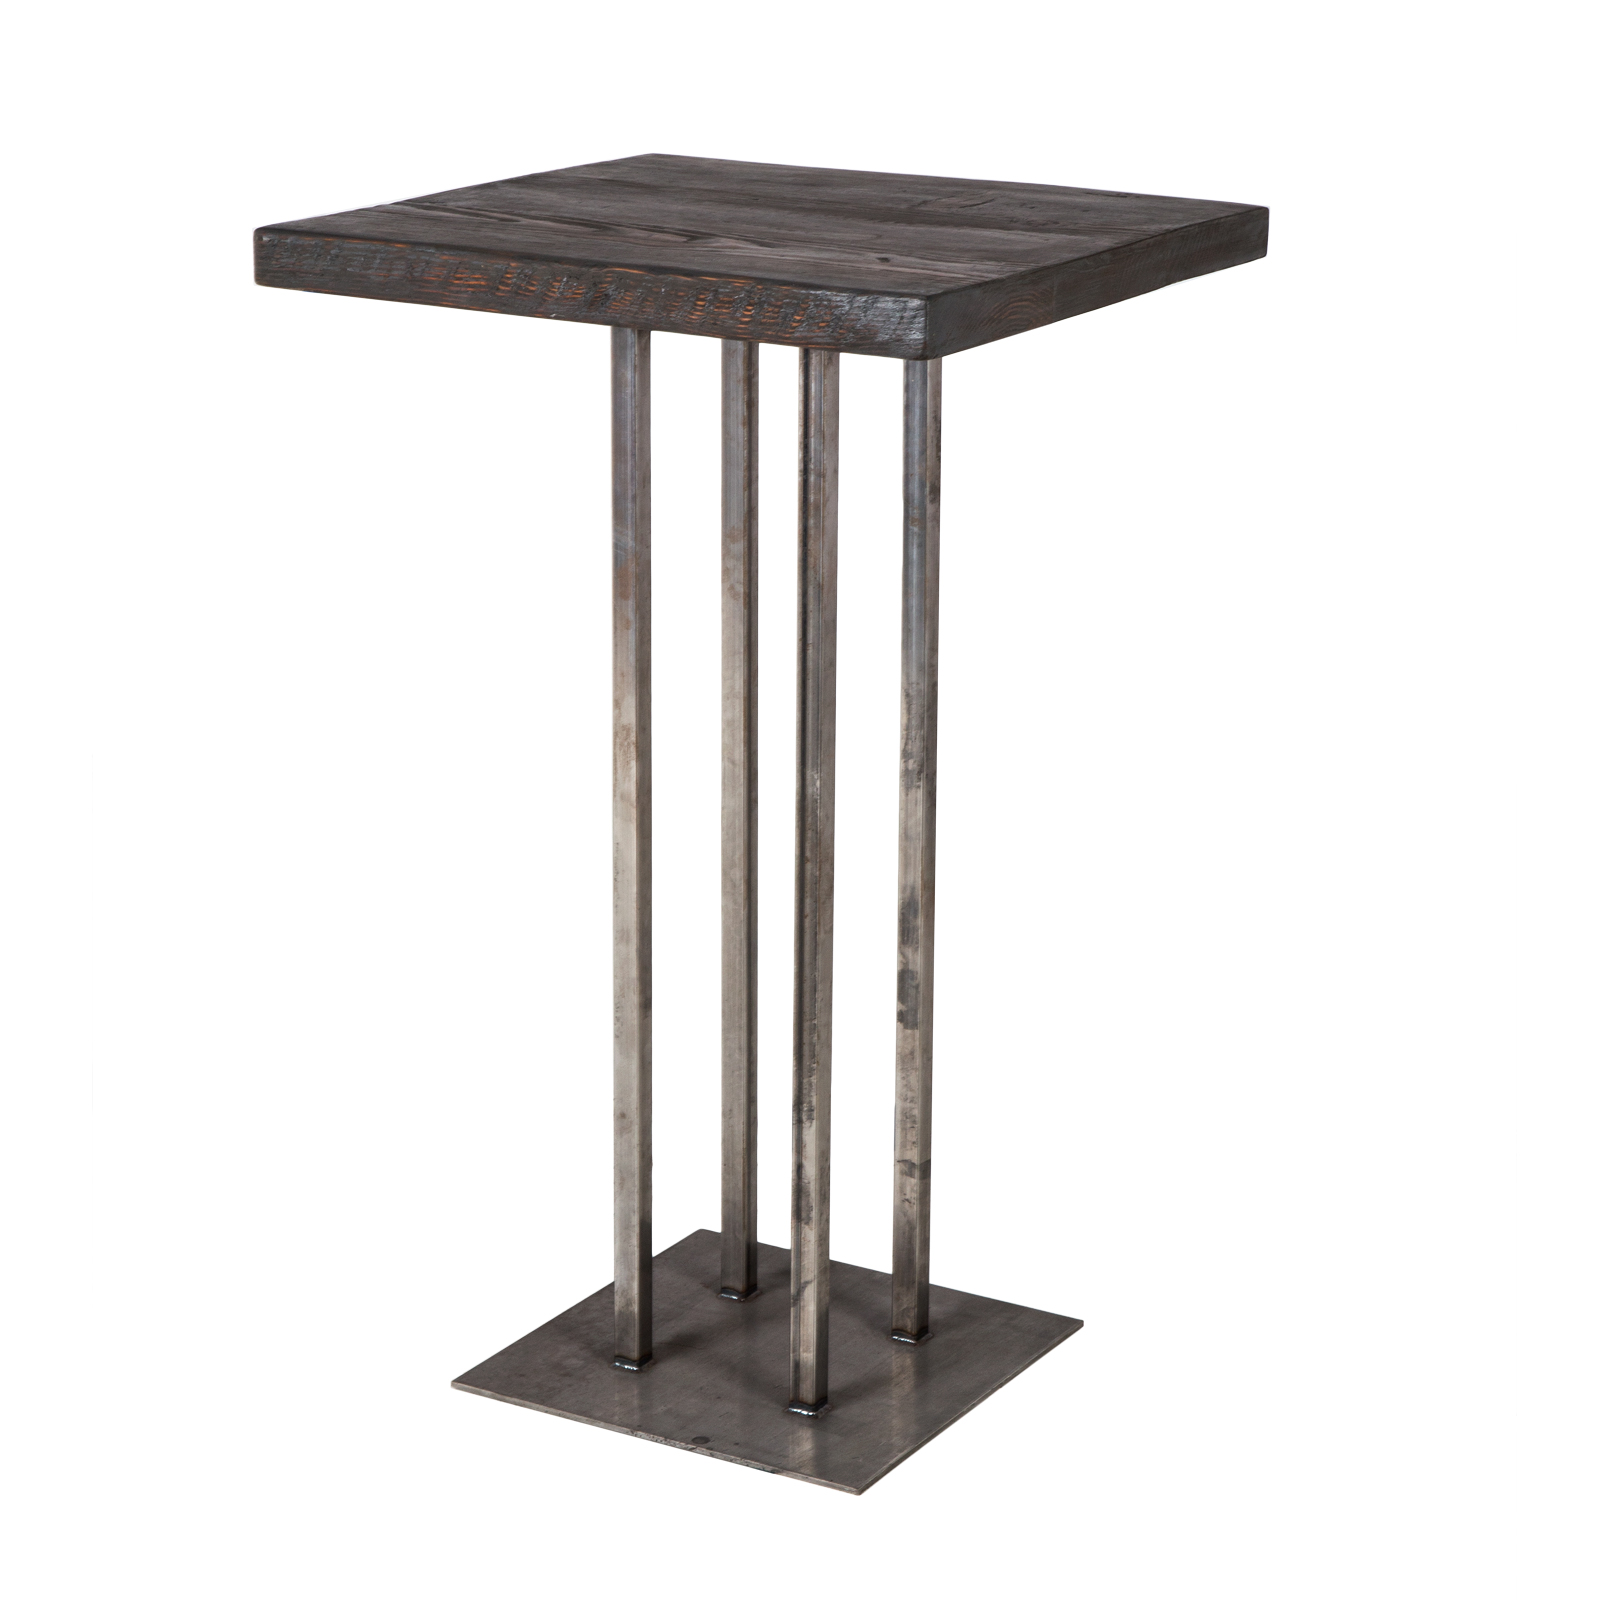 rustic bar table rentals event furniture rental barrel accent pedestal oriental style lamp shades jcpenney sofa plants inch wide console and end tables long narrow target leather